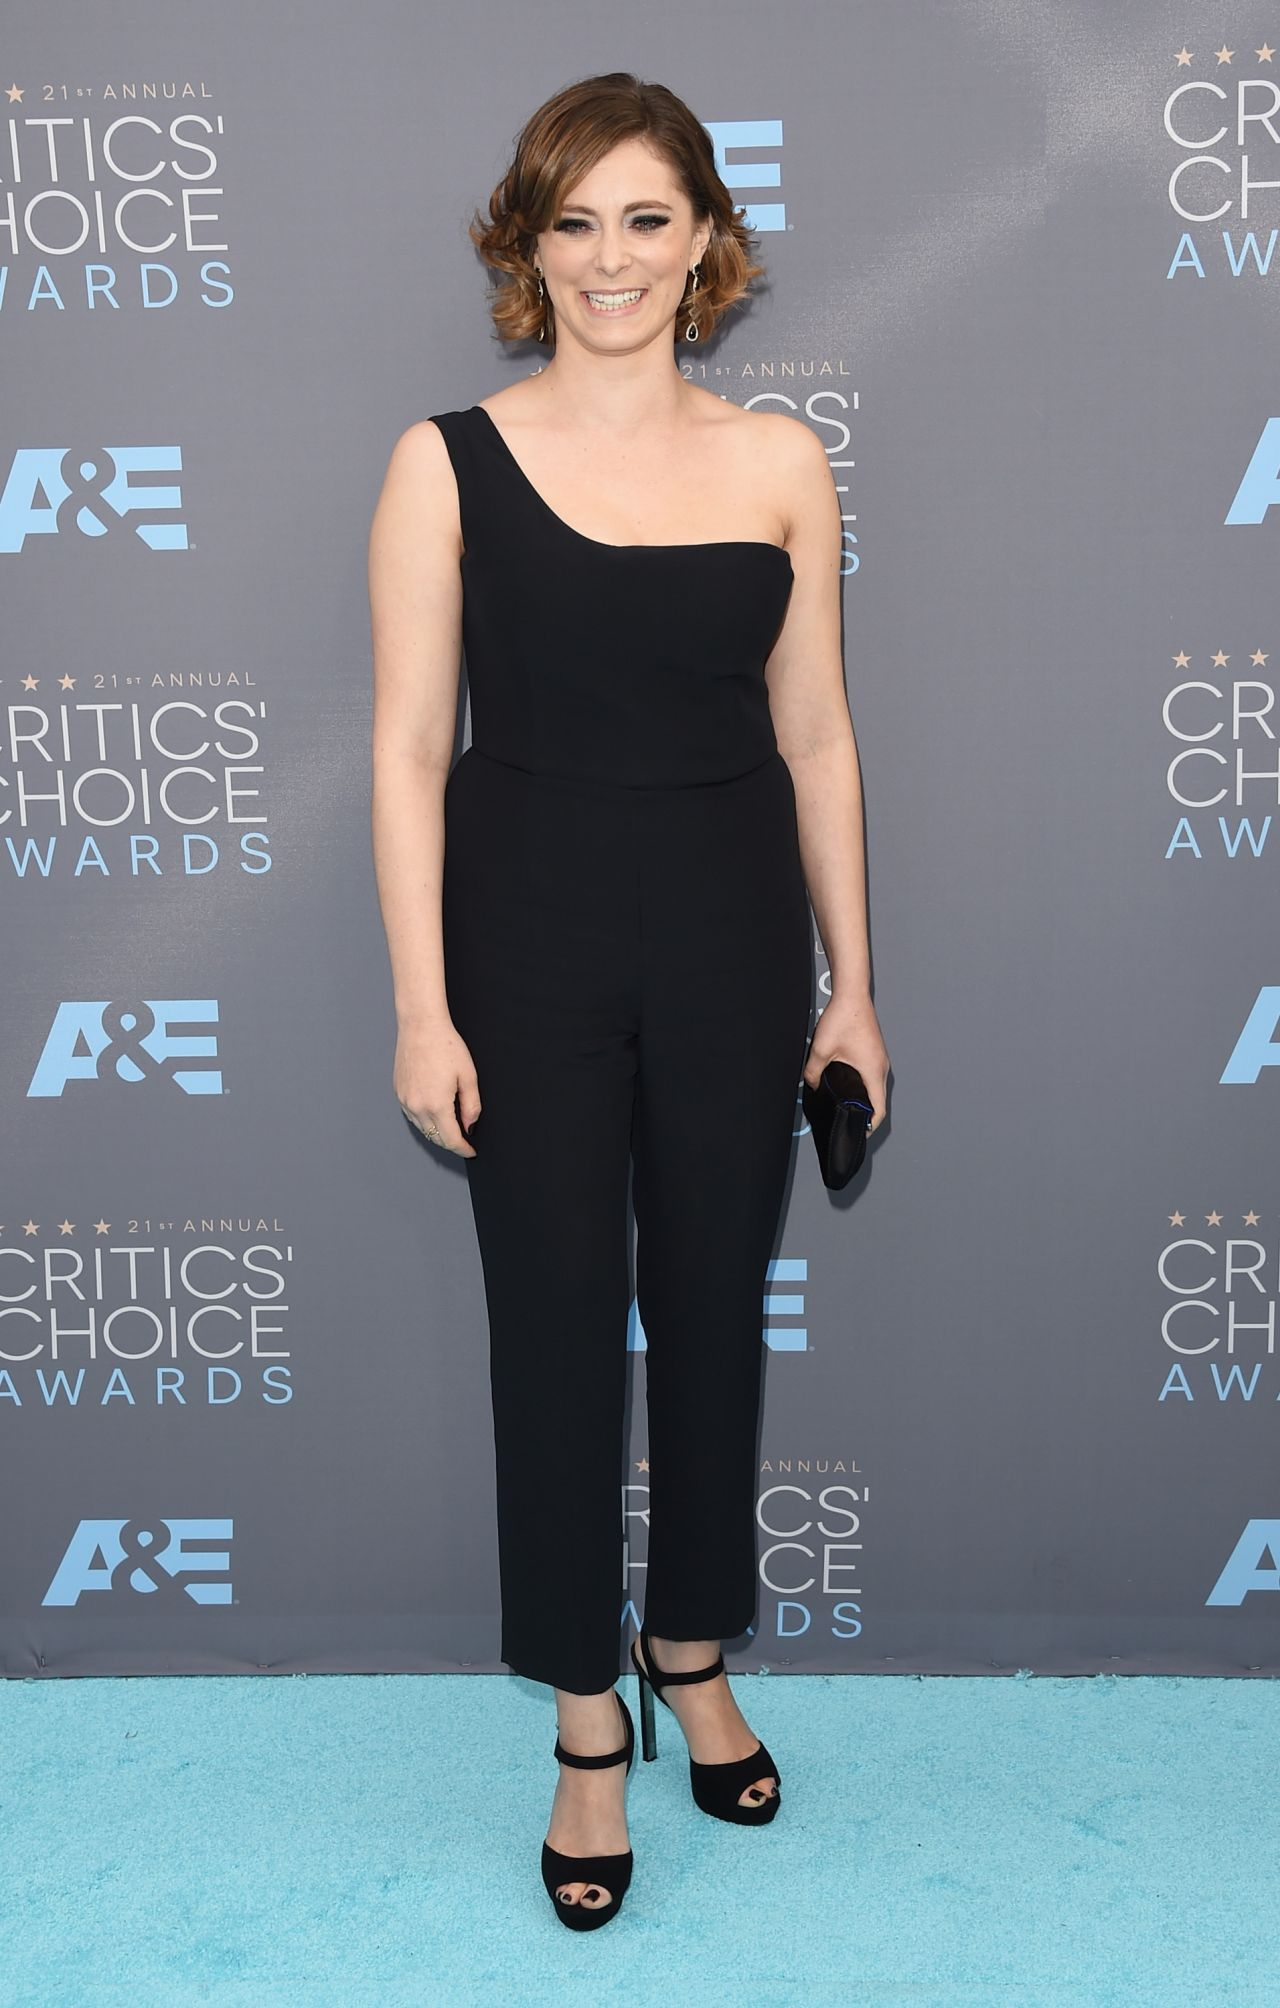 rachel-bloom-2016-critics-choice-awards-in-santa-monica-2